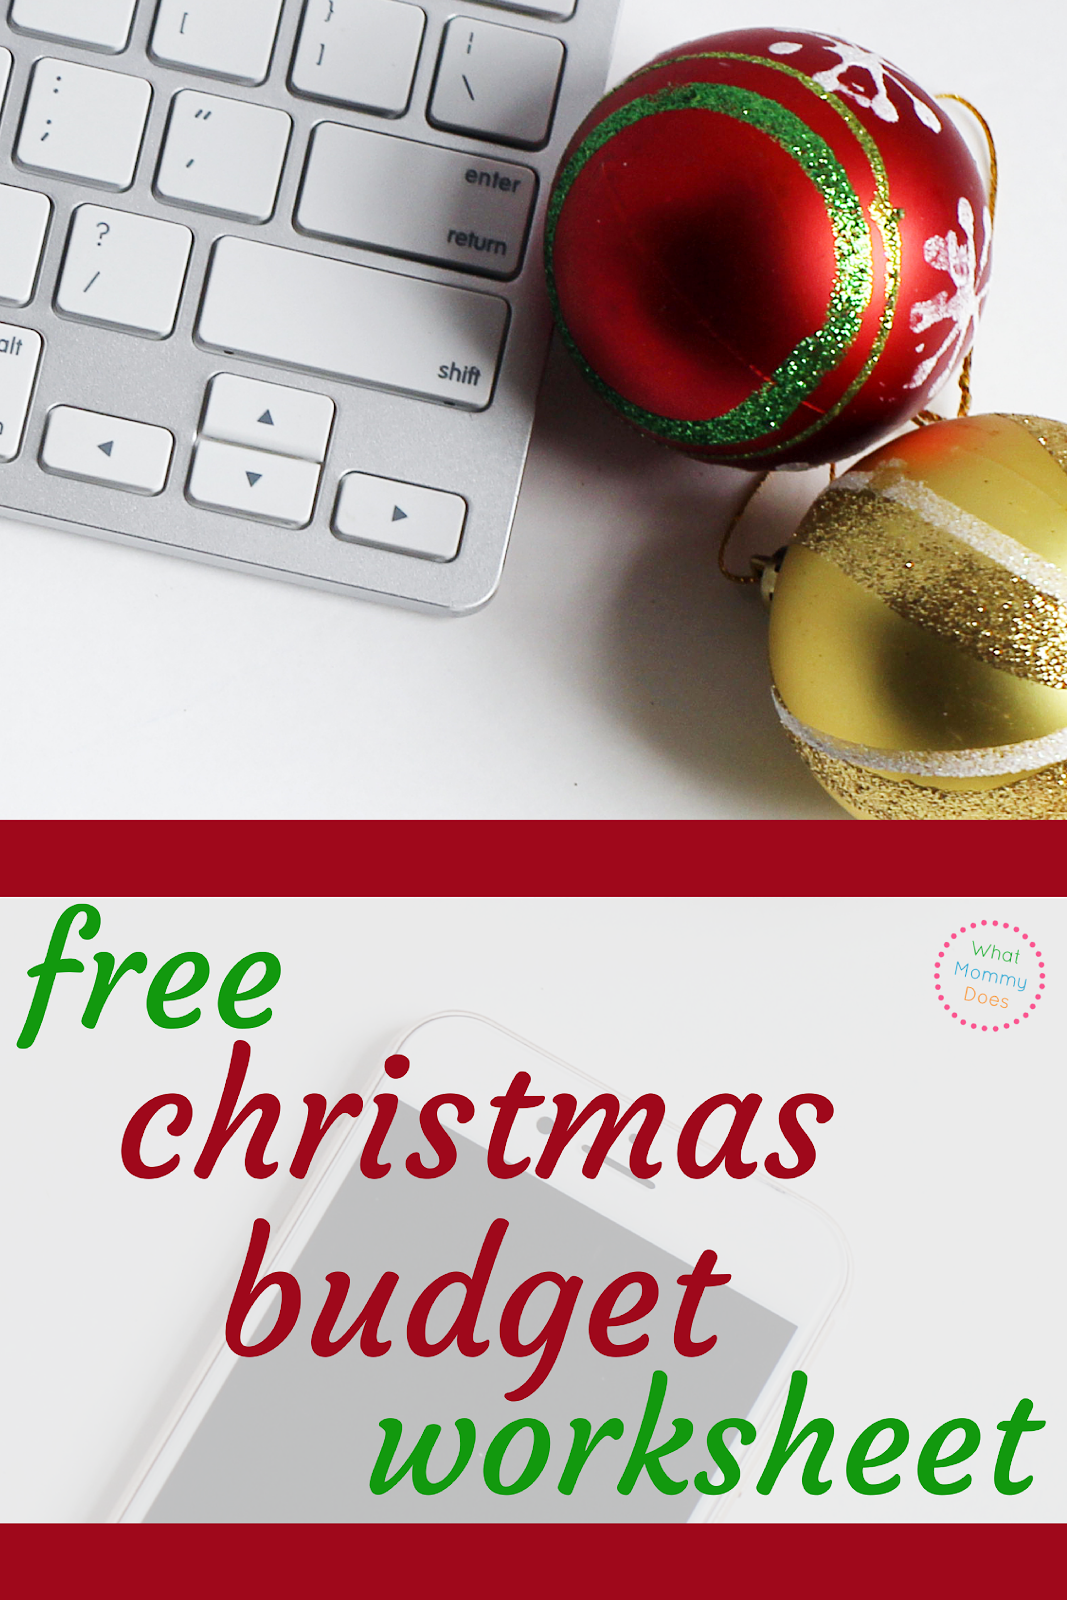 Use this Free Christmas Budget Printable to track your holiday spending!